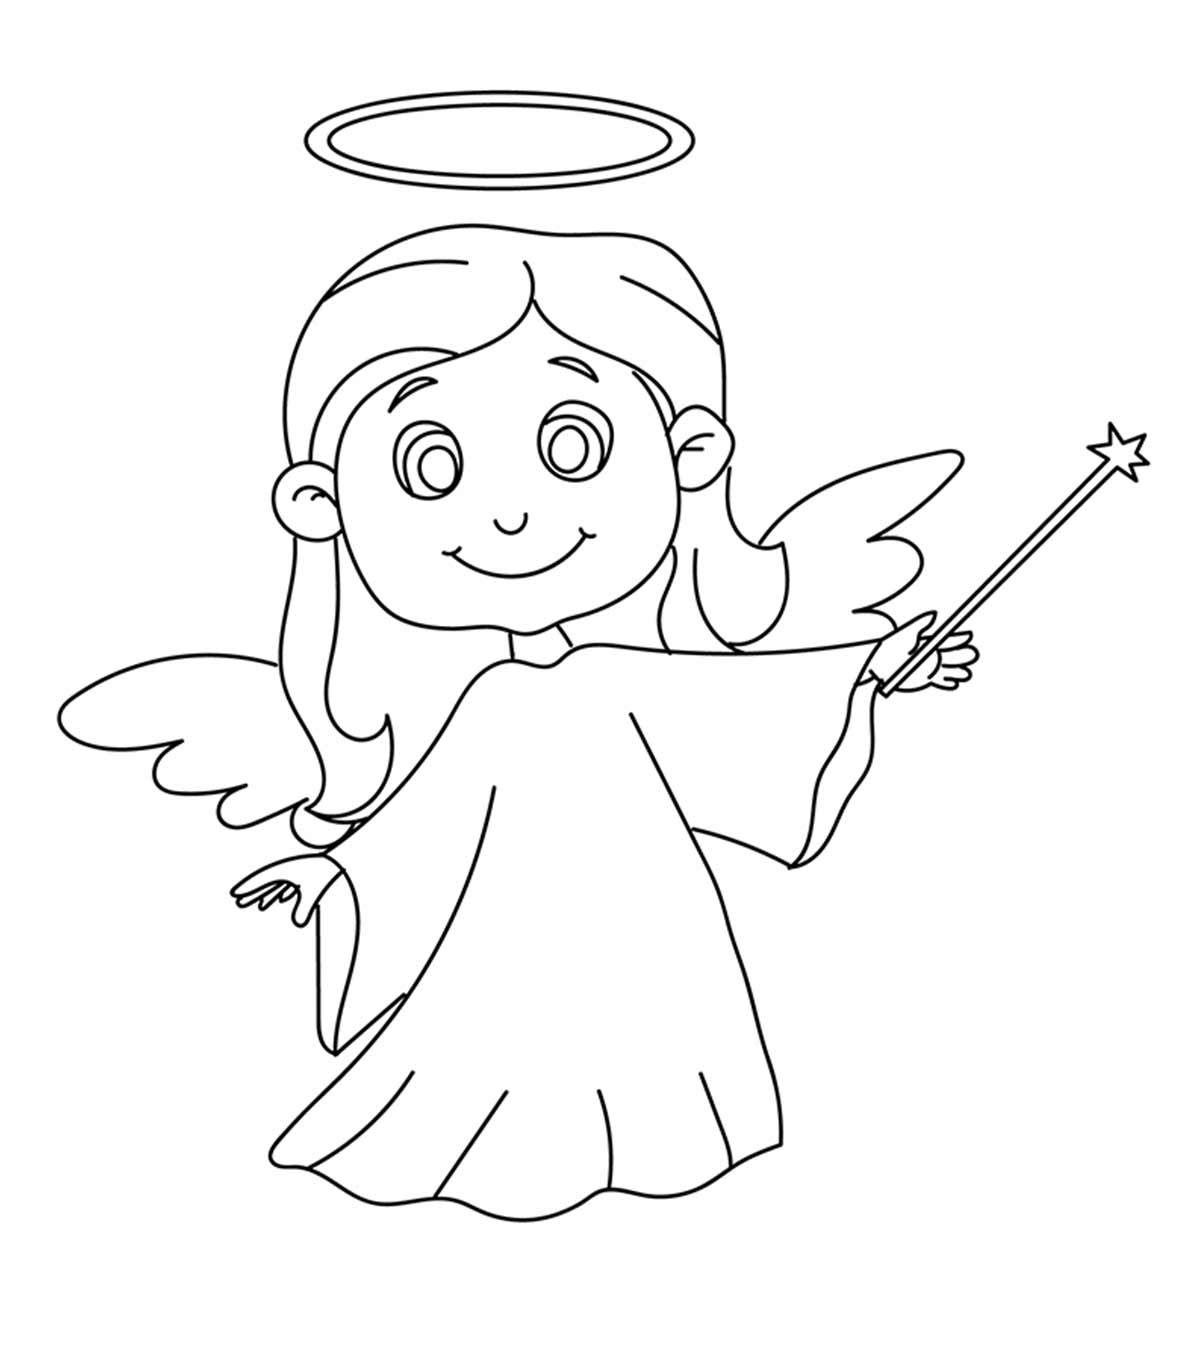 Top  Free Printable Cheerful Angel Coloring Pages Online